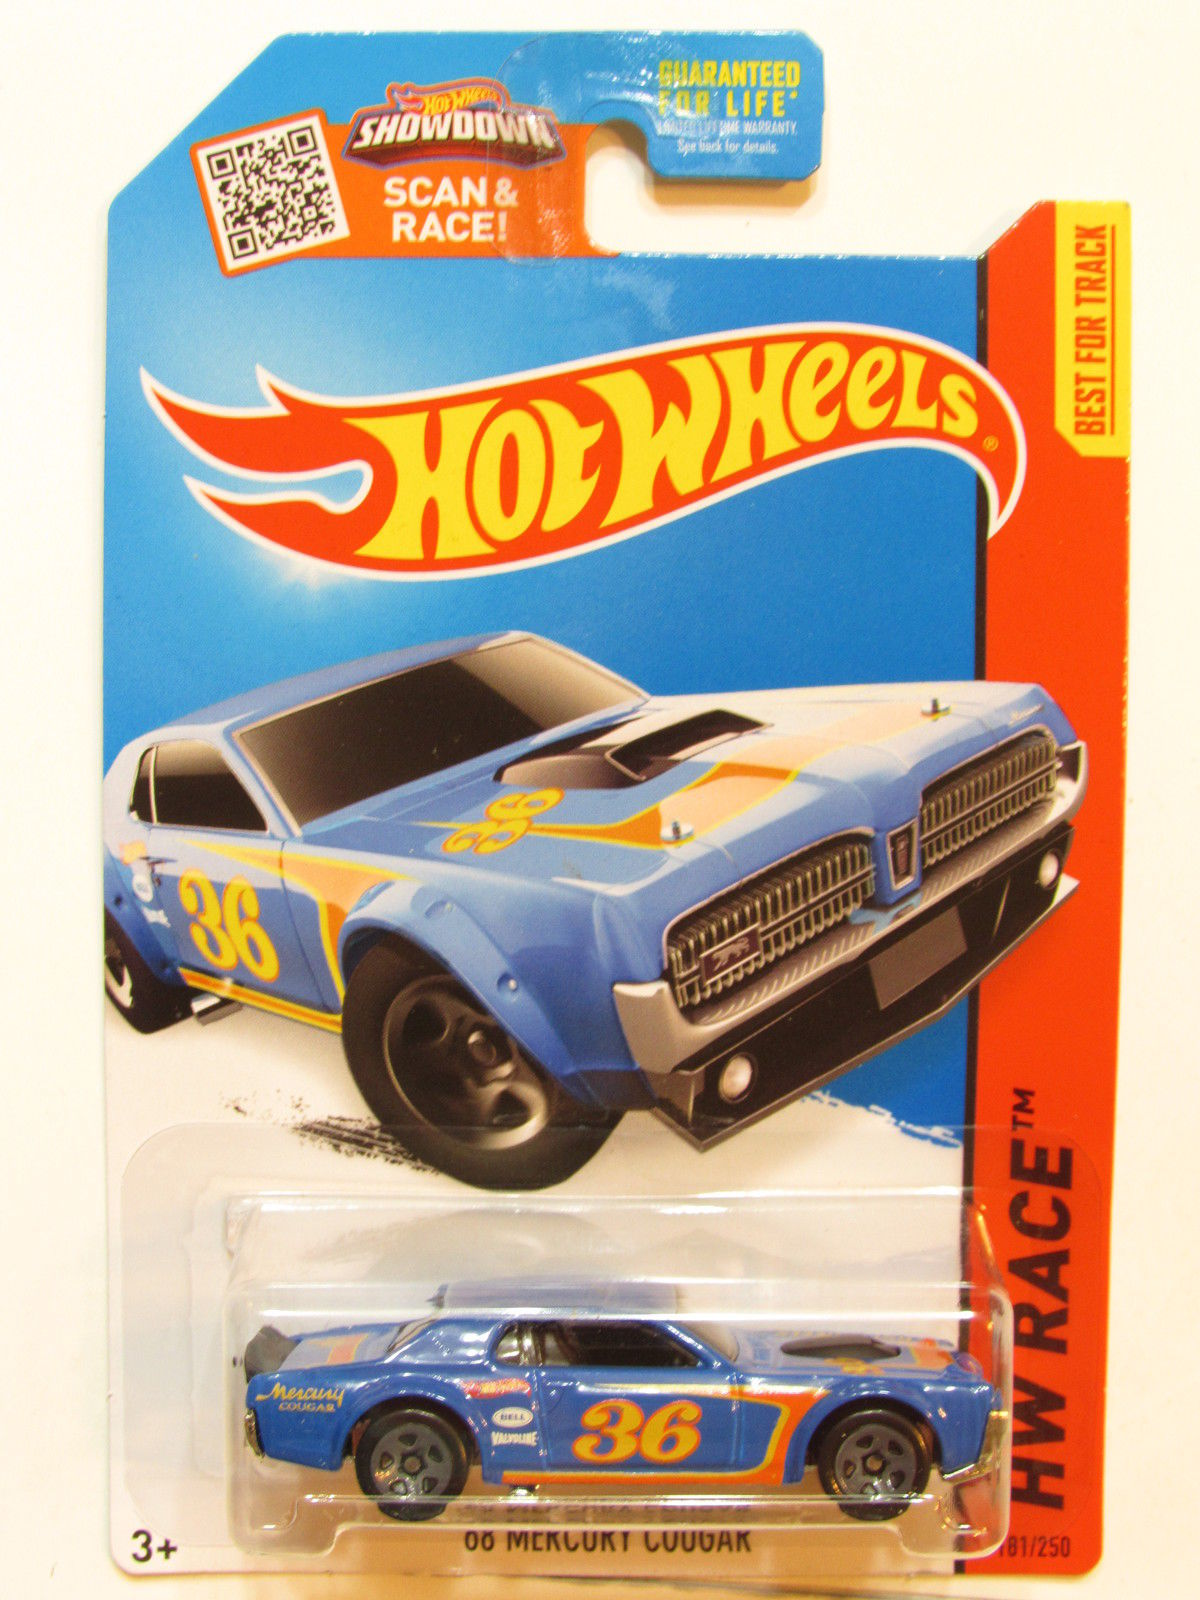 HOT WHEELS 2015 HW RACE - TRACK ACES '68 MERCURY COUGAR